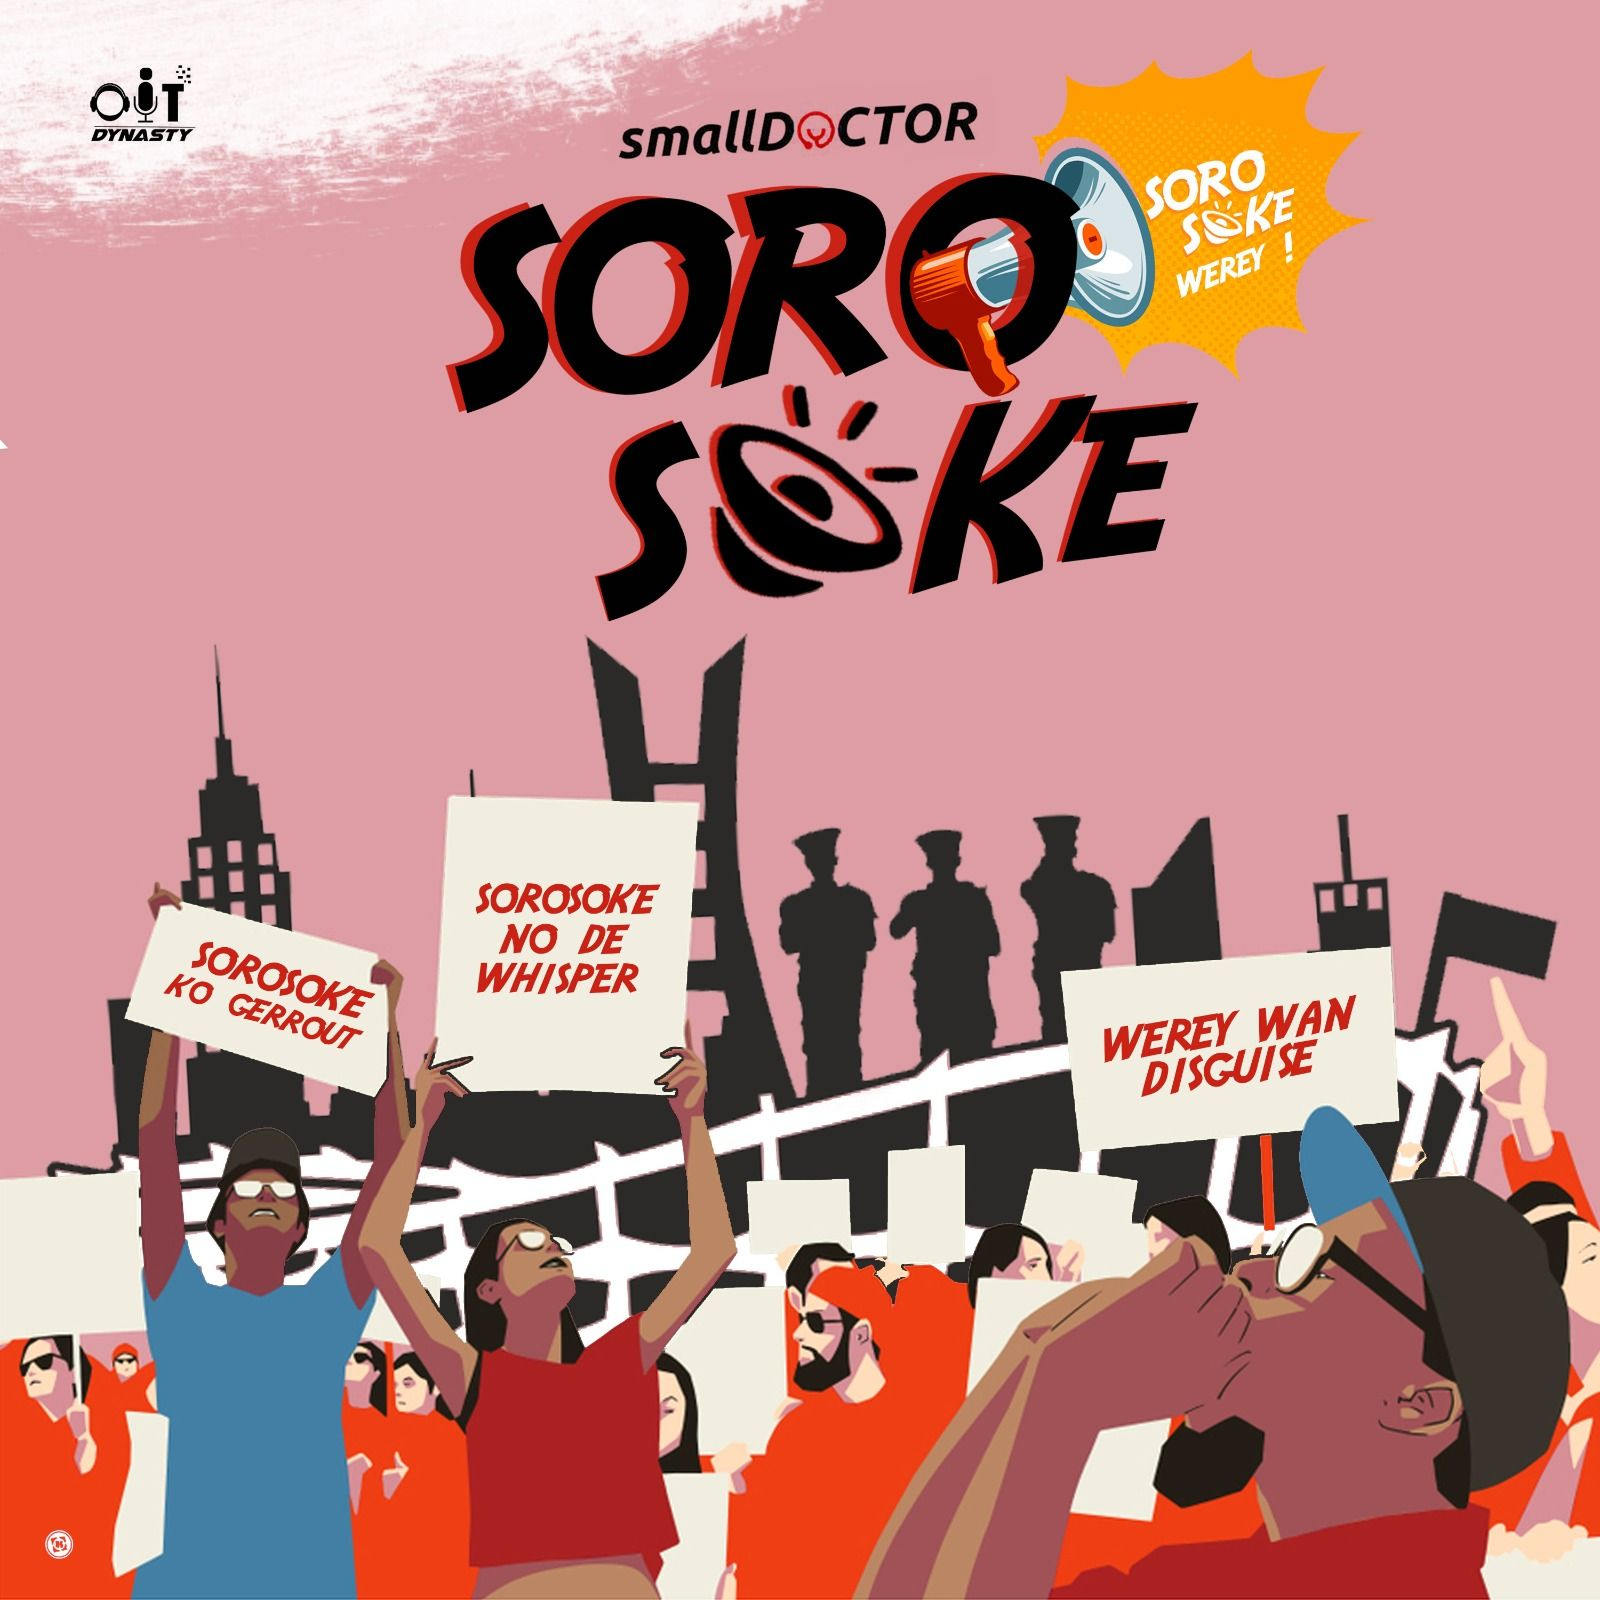 Small Doctor - Soro Soke (Lyrics)